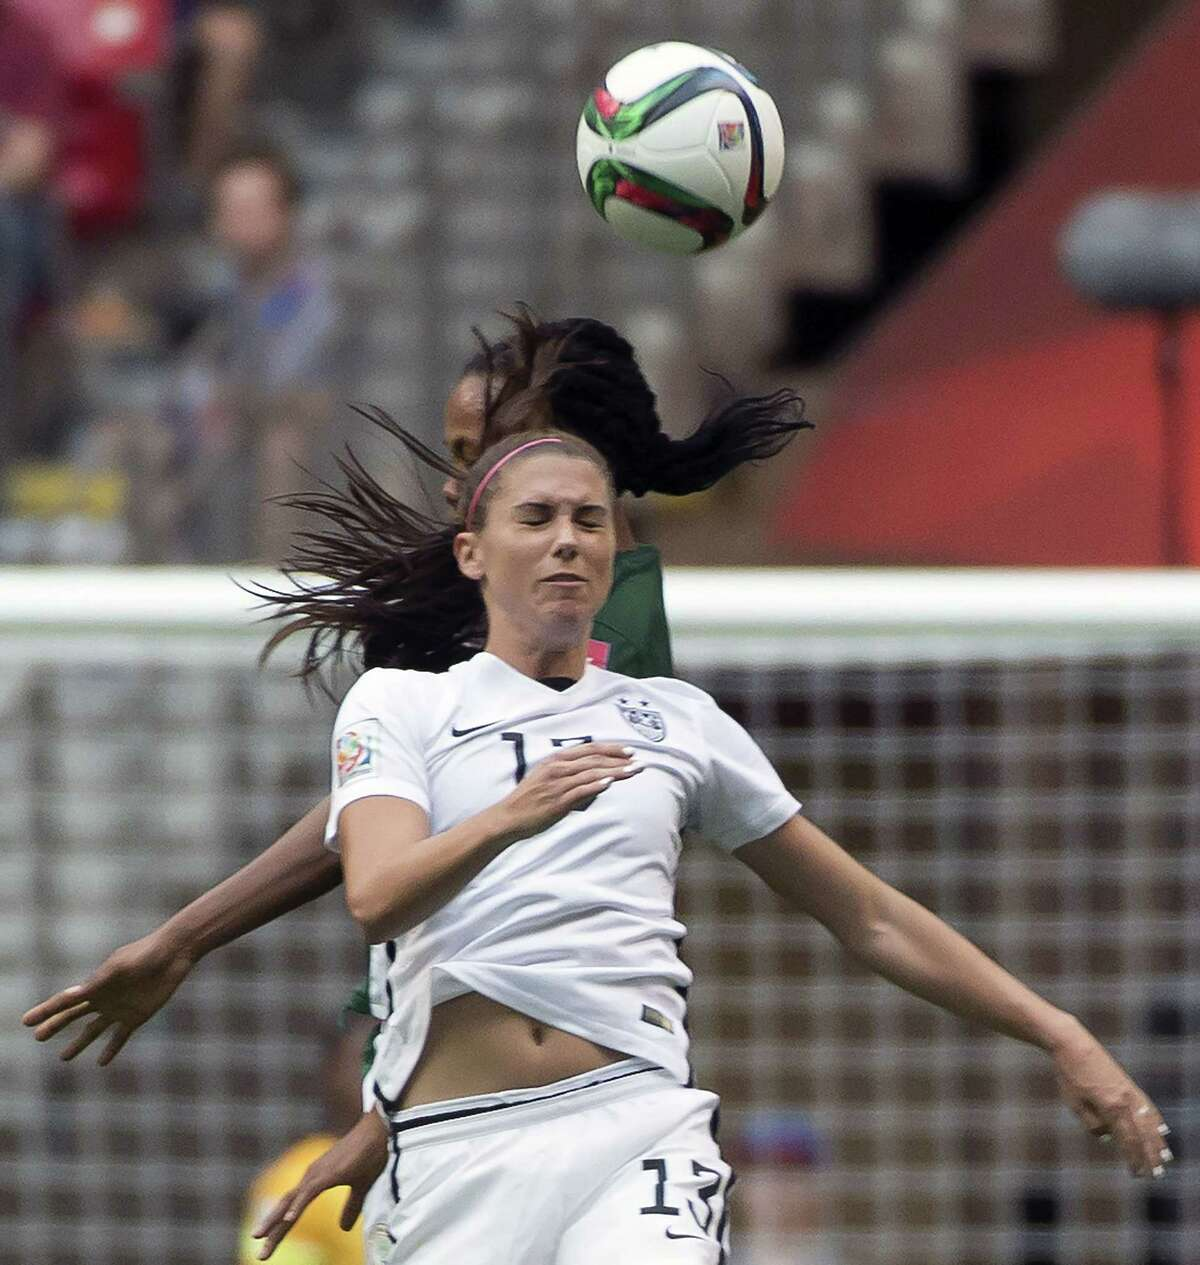 Alex Morgan and the U.S. women's soccer team will play Columbia on Monday in the knockout round.